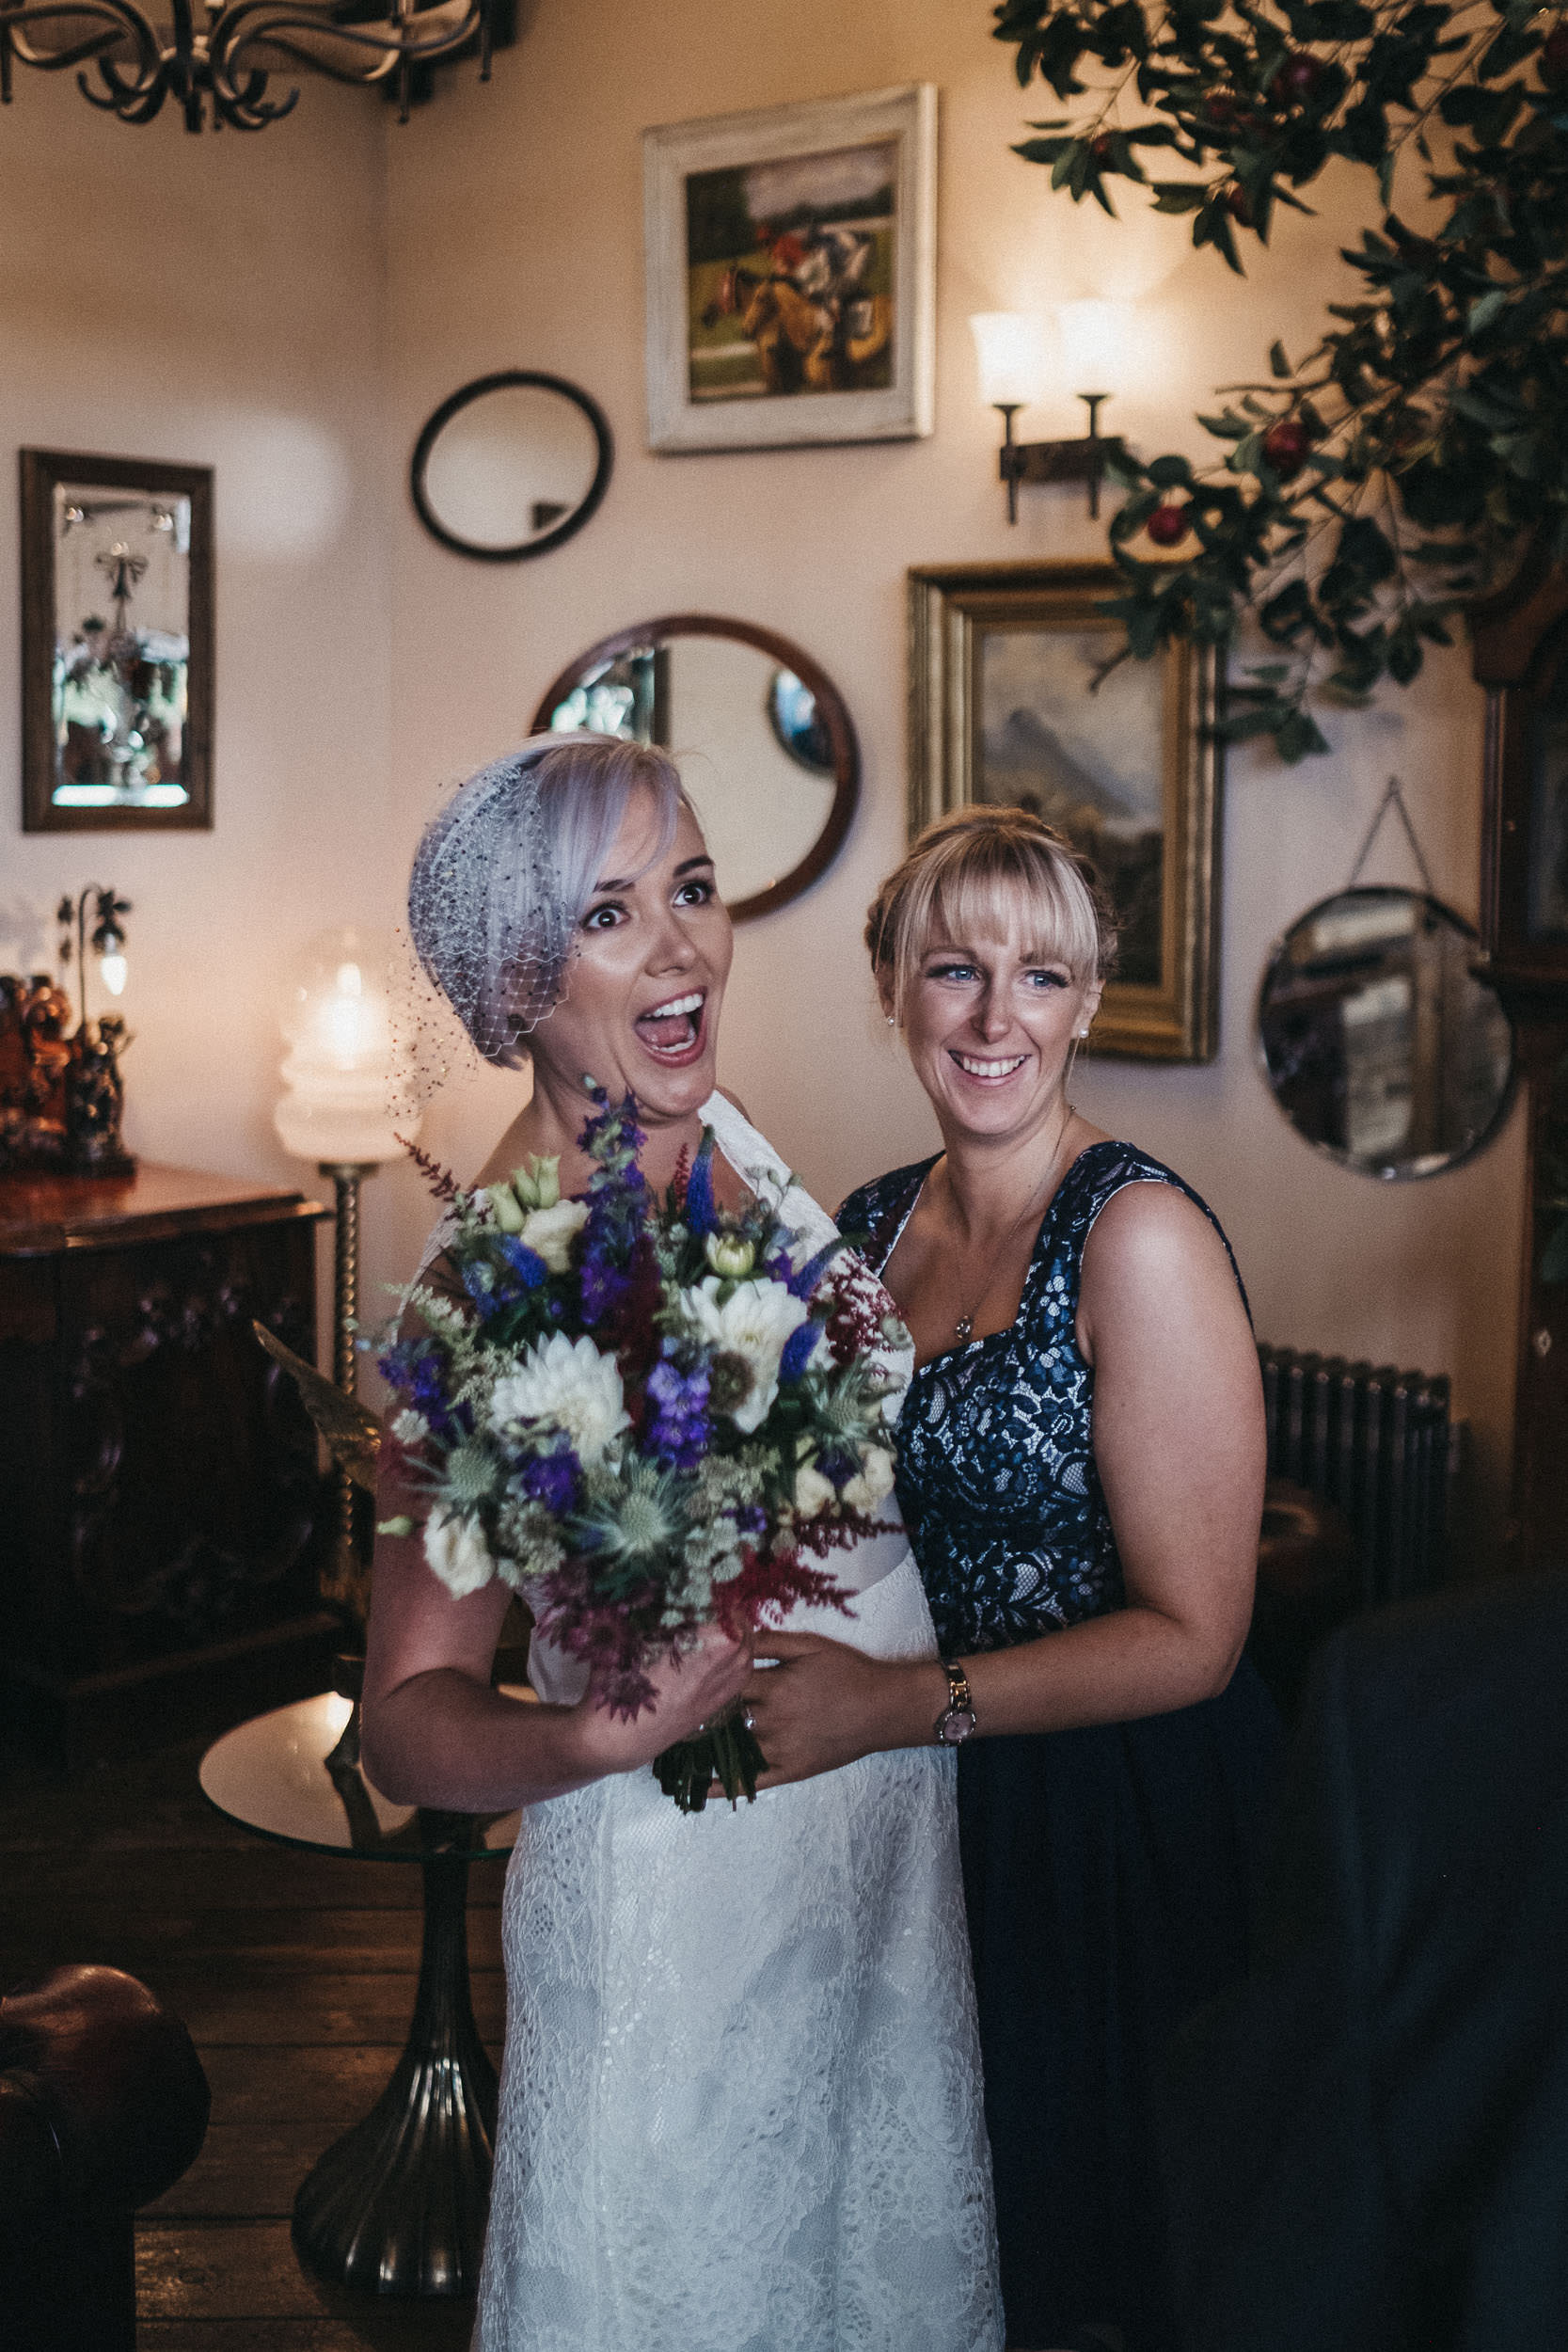 Bride pulls a funny face at a wedding at South Causey Inn Durham